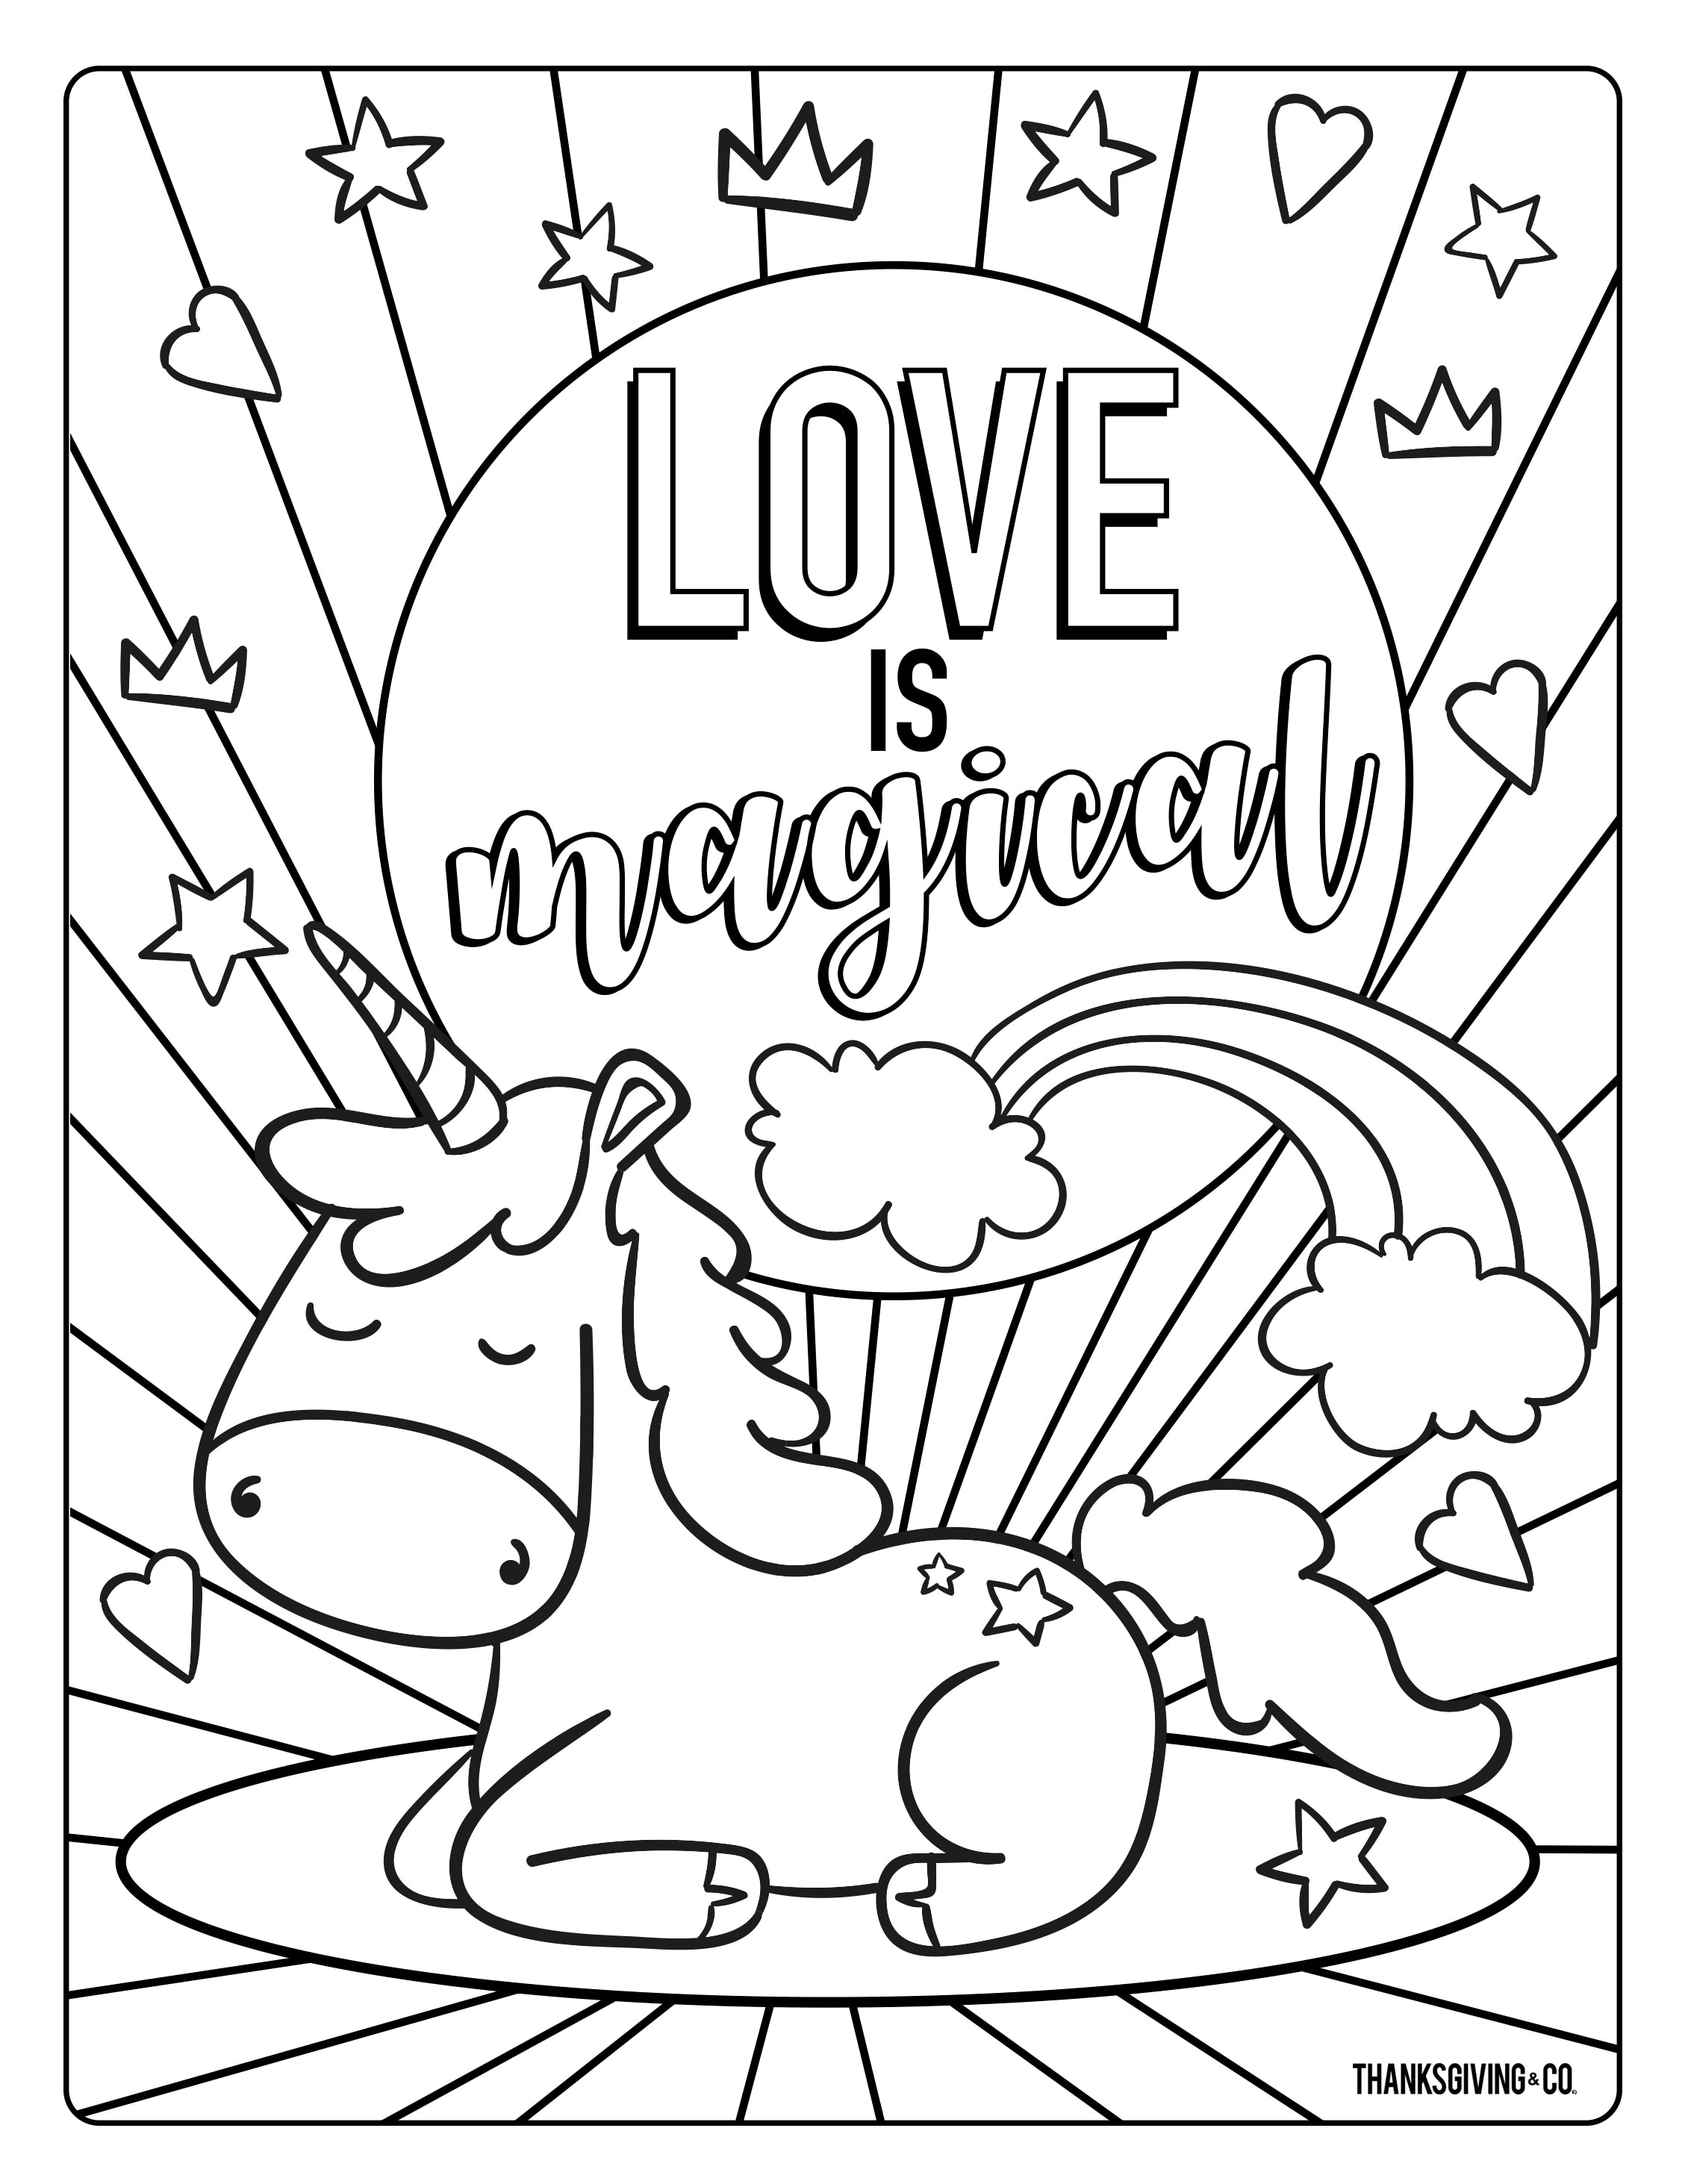 Valentine Coloring Book Pages Coloring Arts Free Valentine Coloringges Arts Phenomenal Image